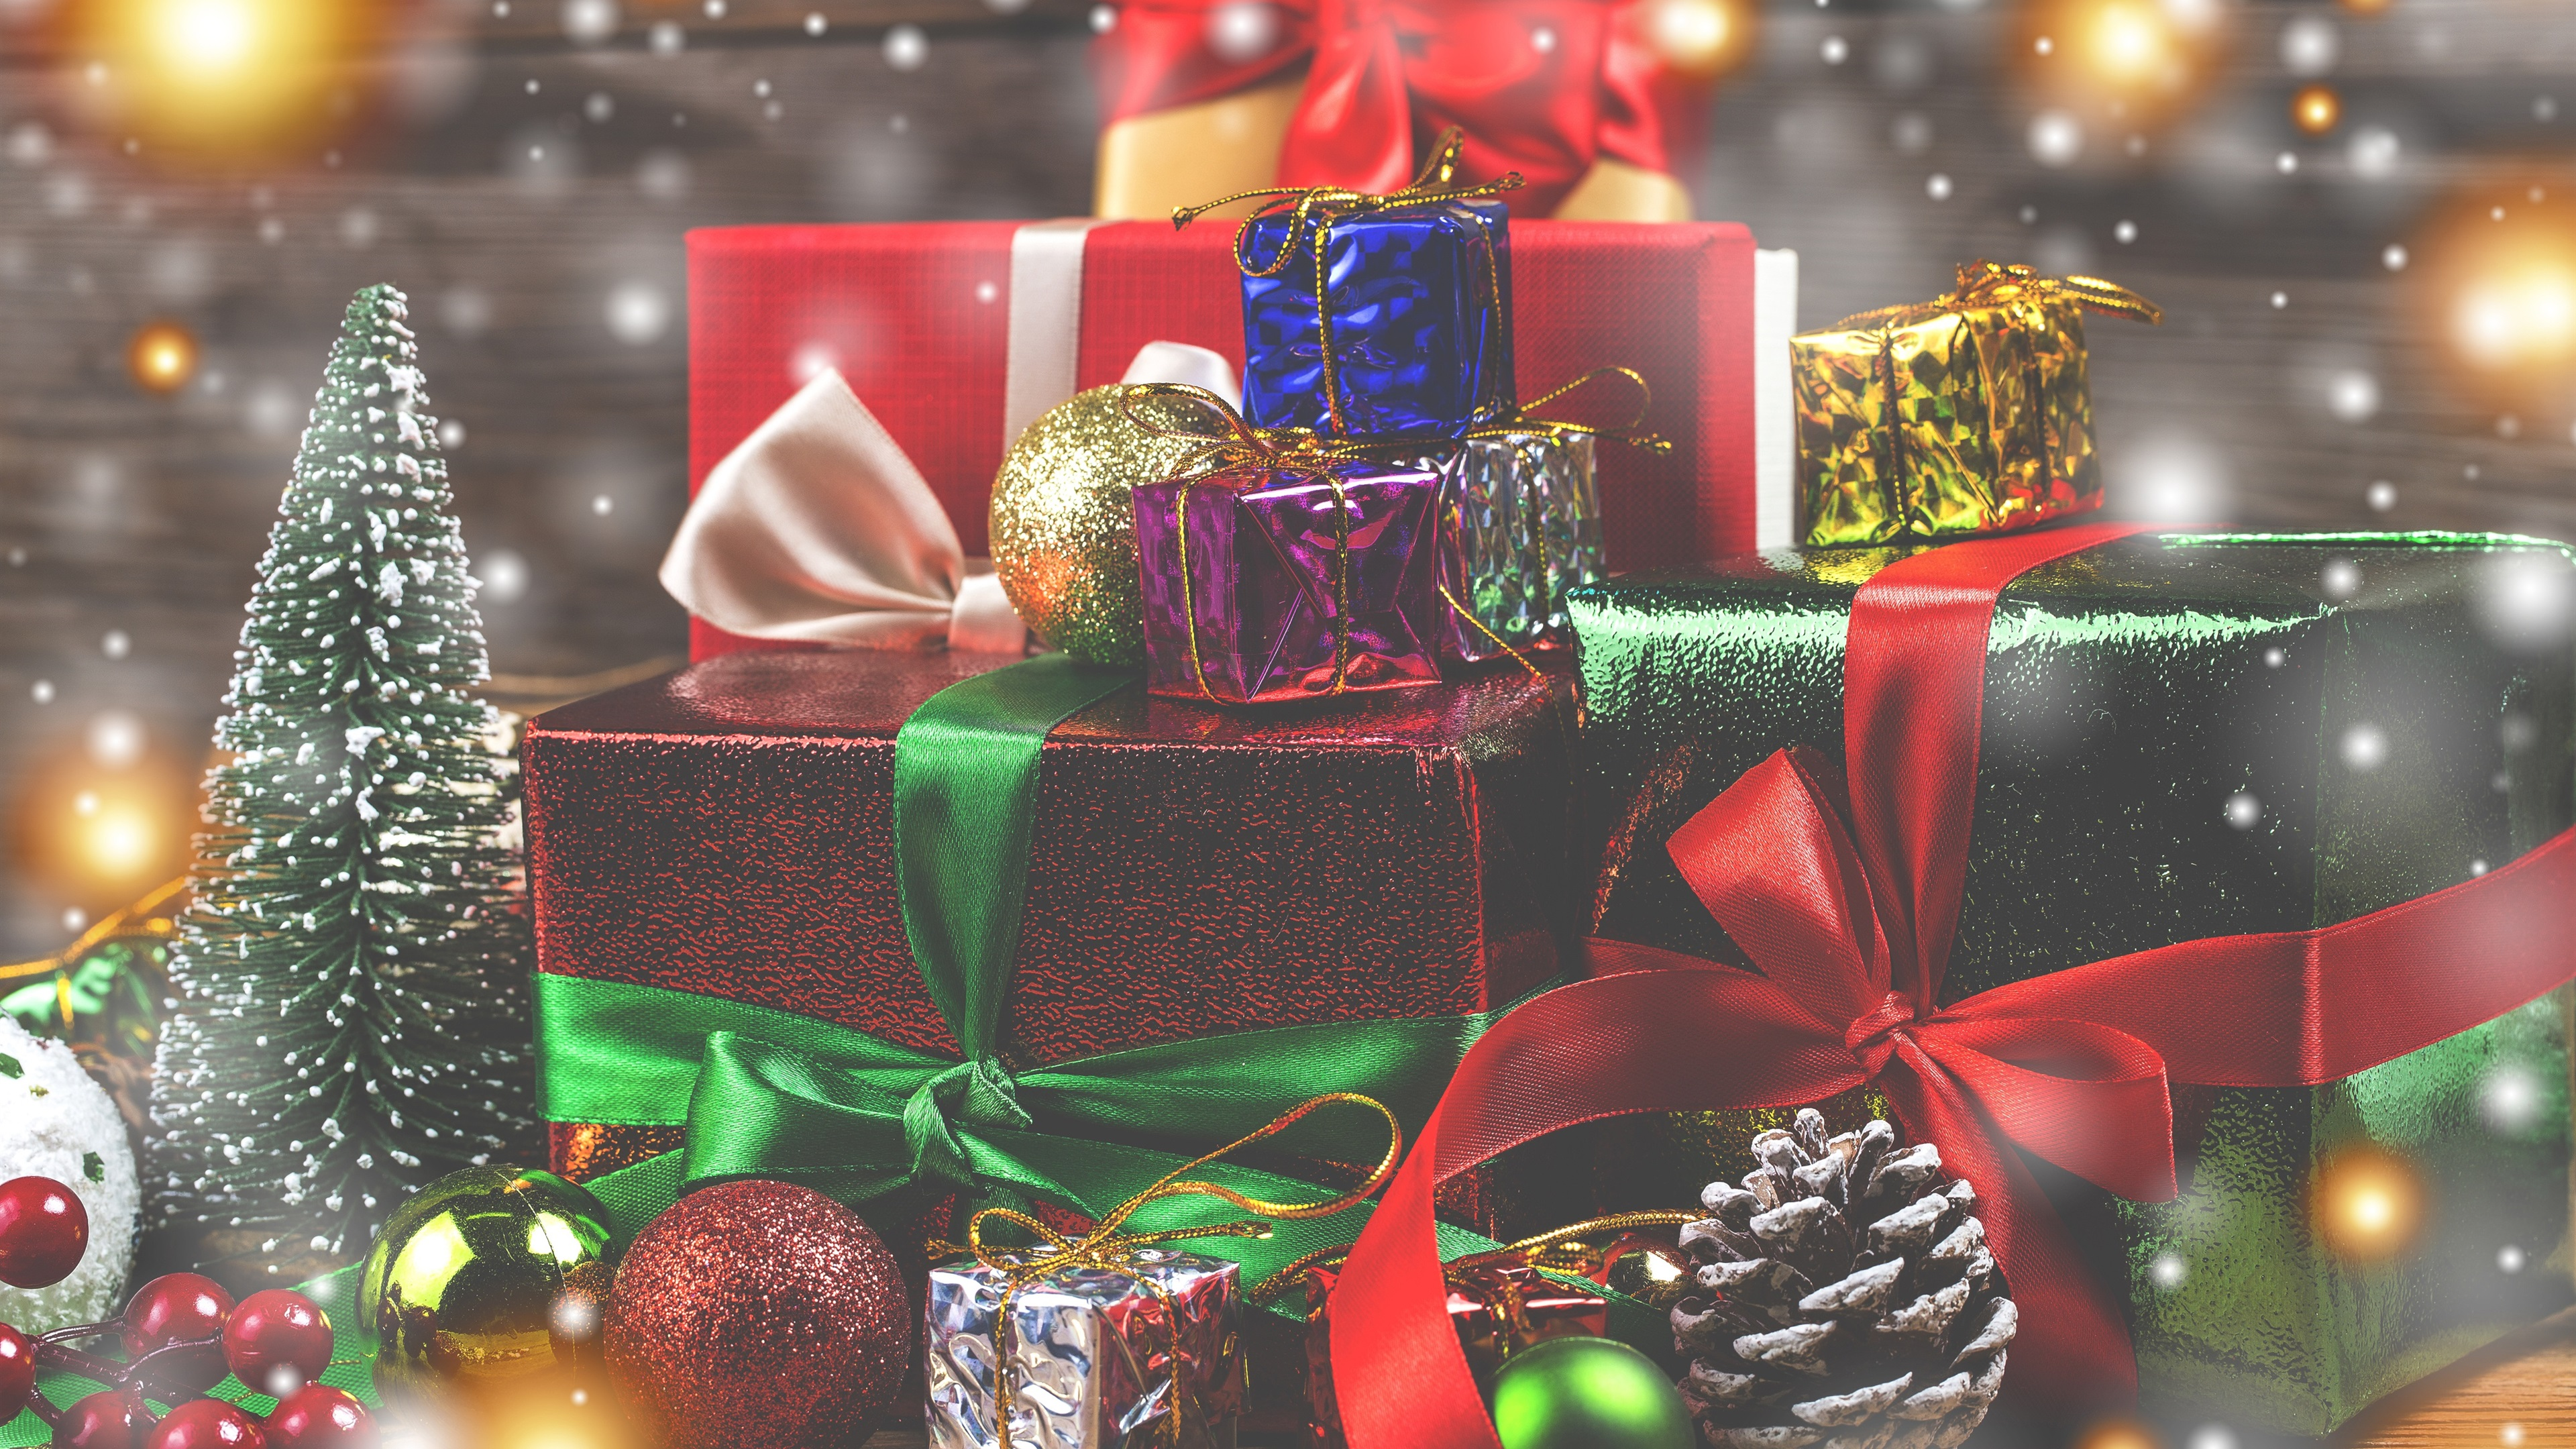 Wallpaper Lot Of Gifts Balls Christmas 3840x2160 Uhd 4k Picture Image